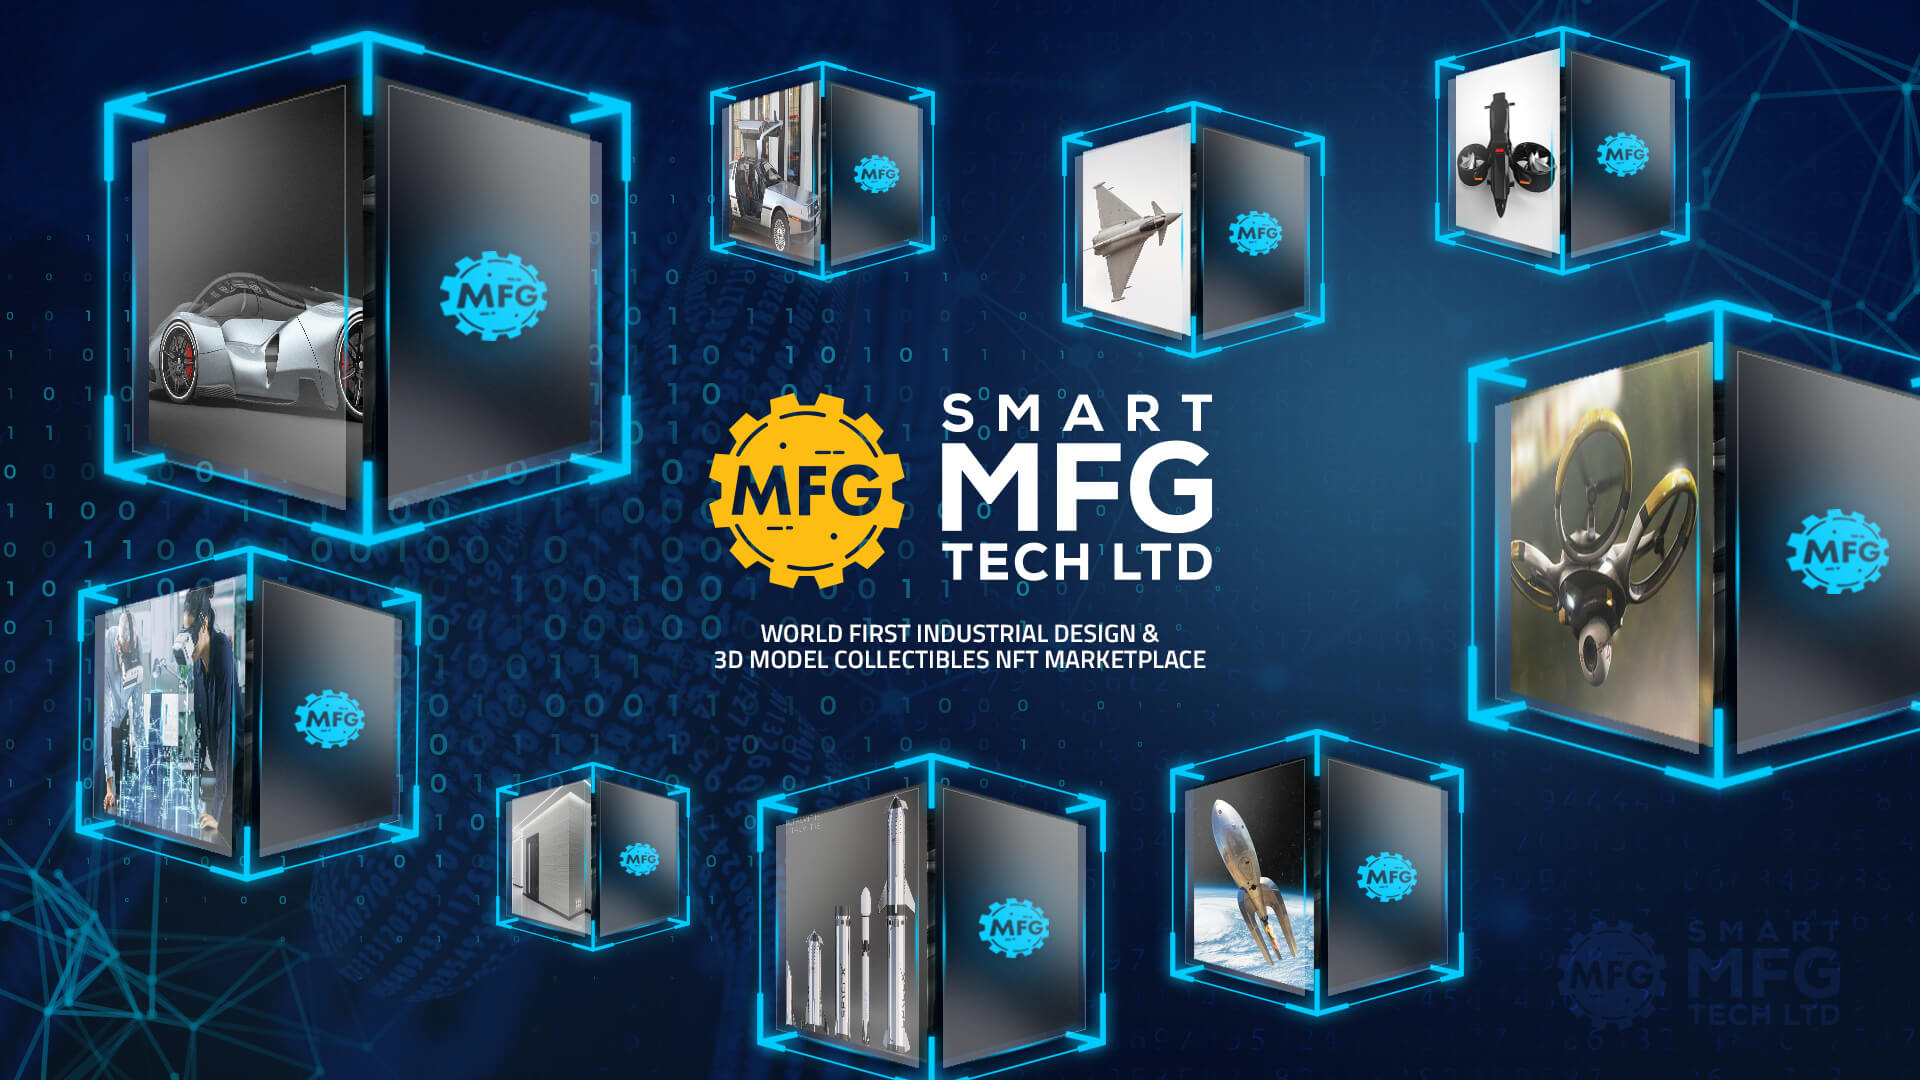 Smart-MFG-Tech-3dmodel-industrial-design-NFT-marketplace